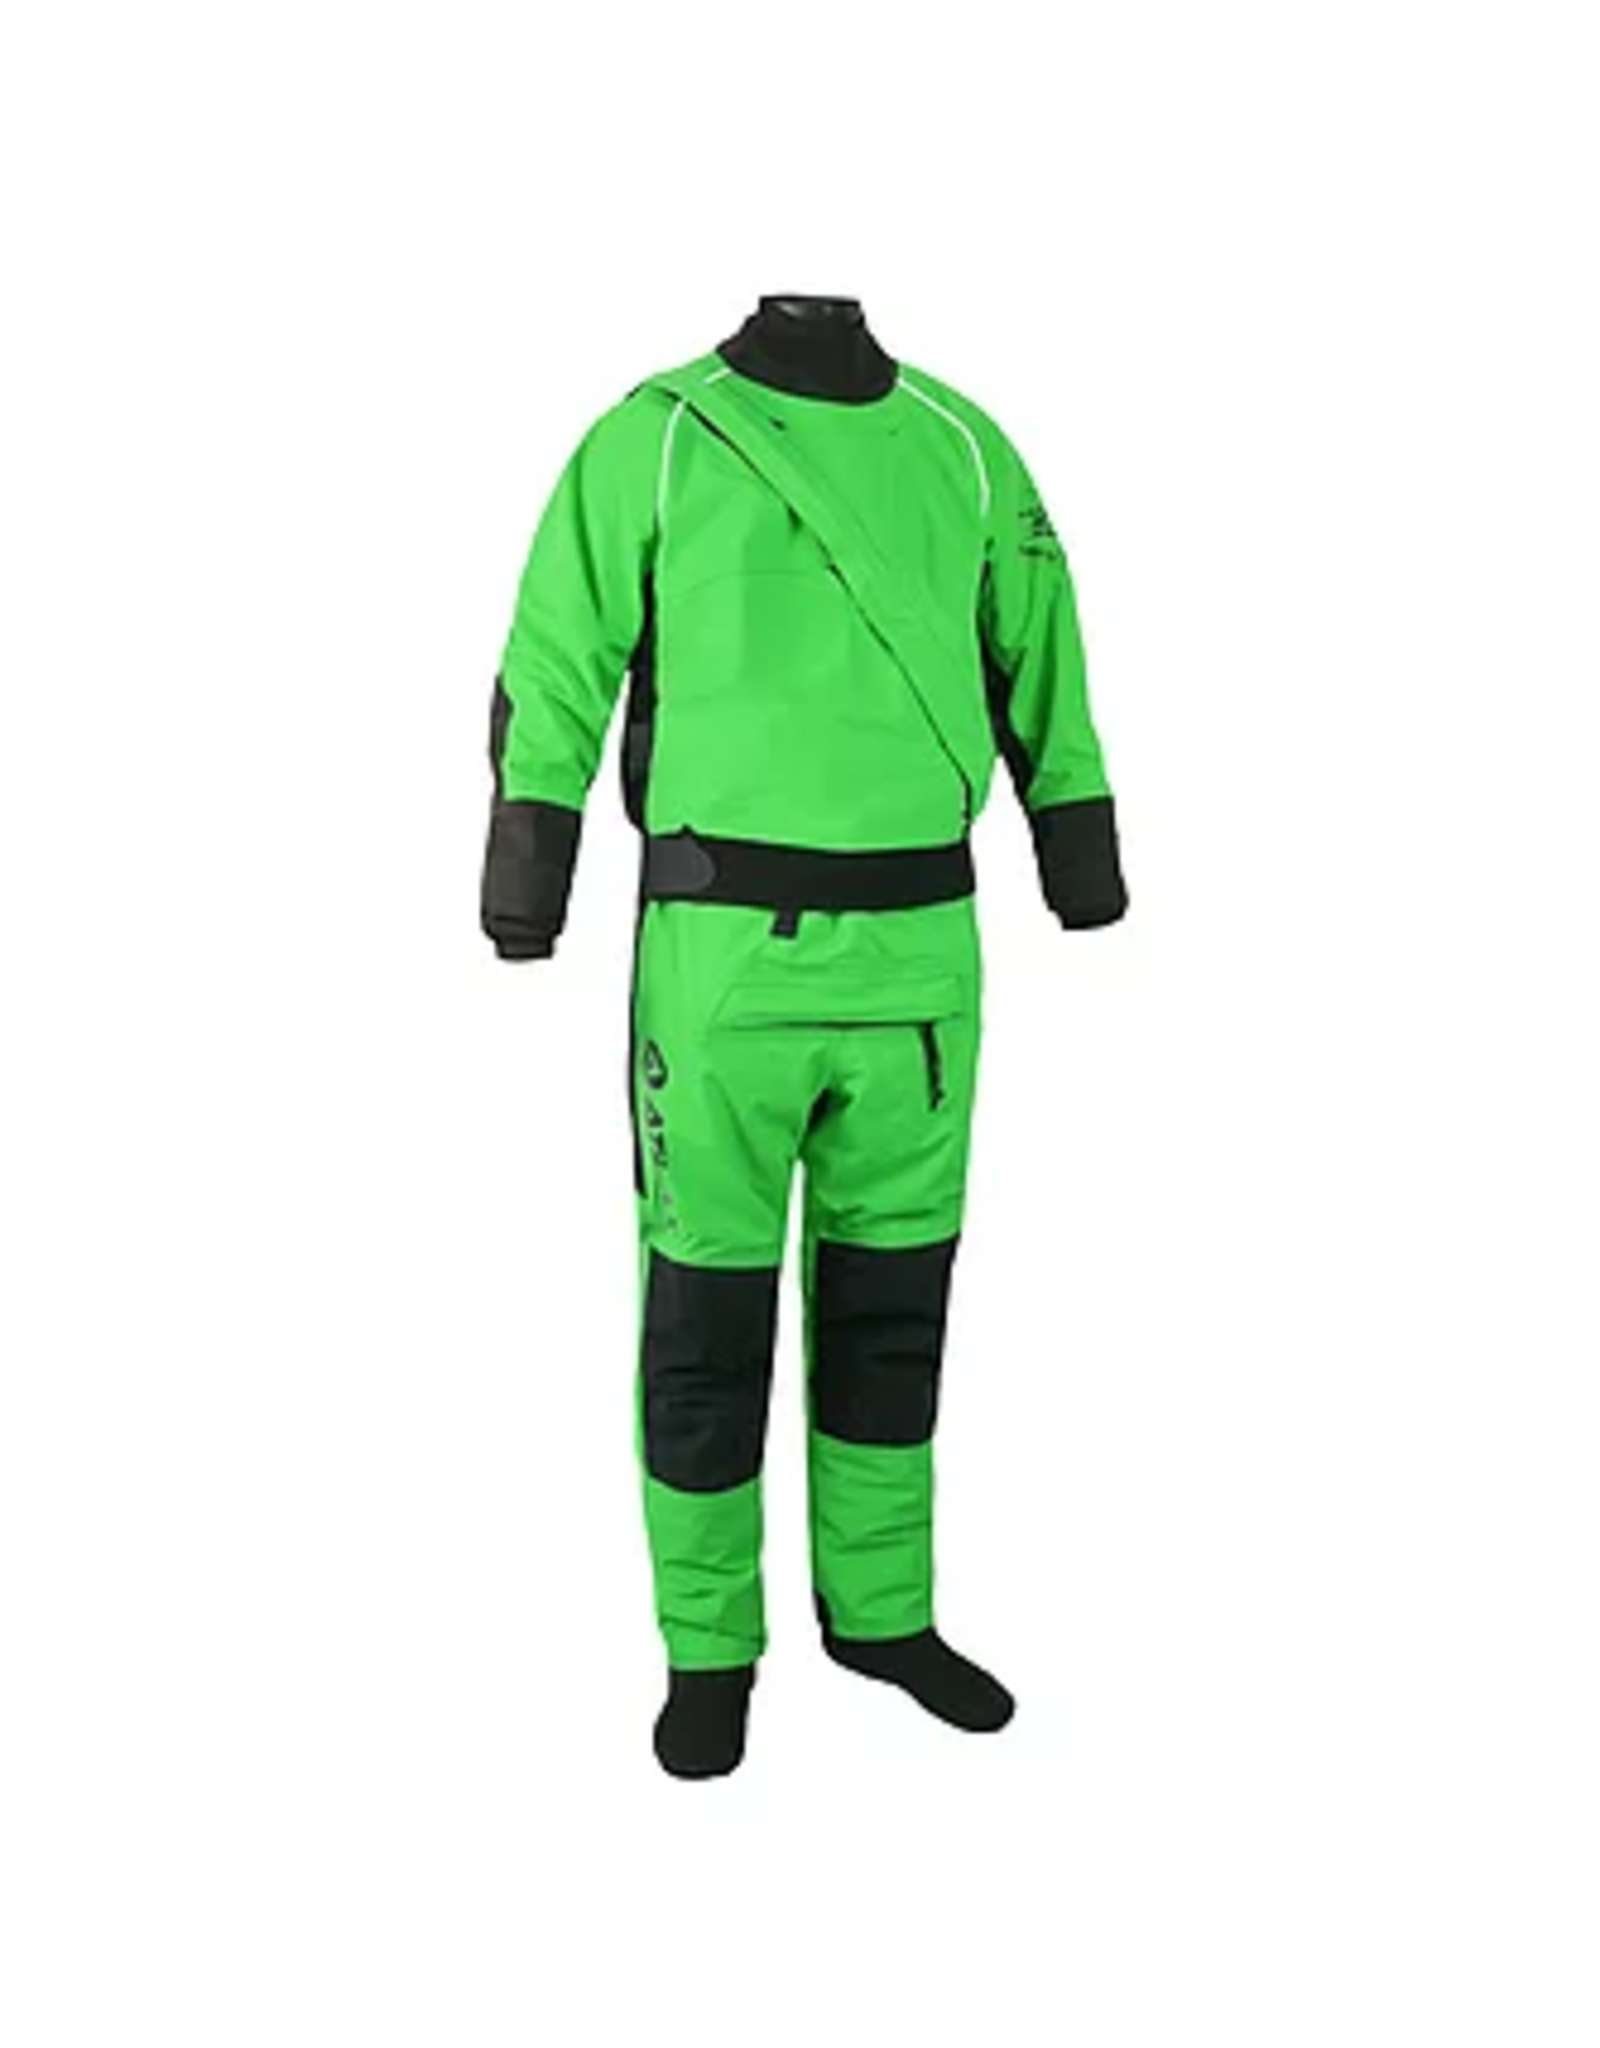 Atlan Mista Front Entry Dry Suit With Relief Zipper